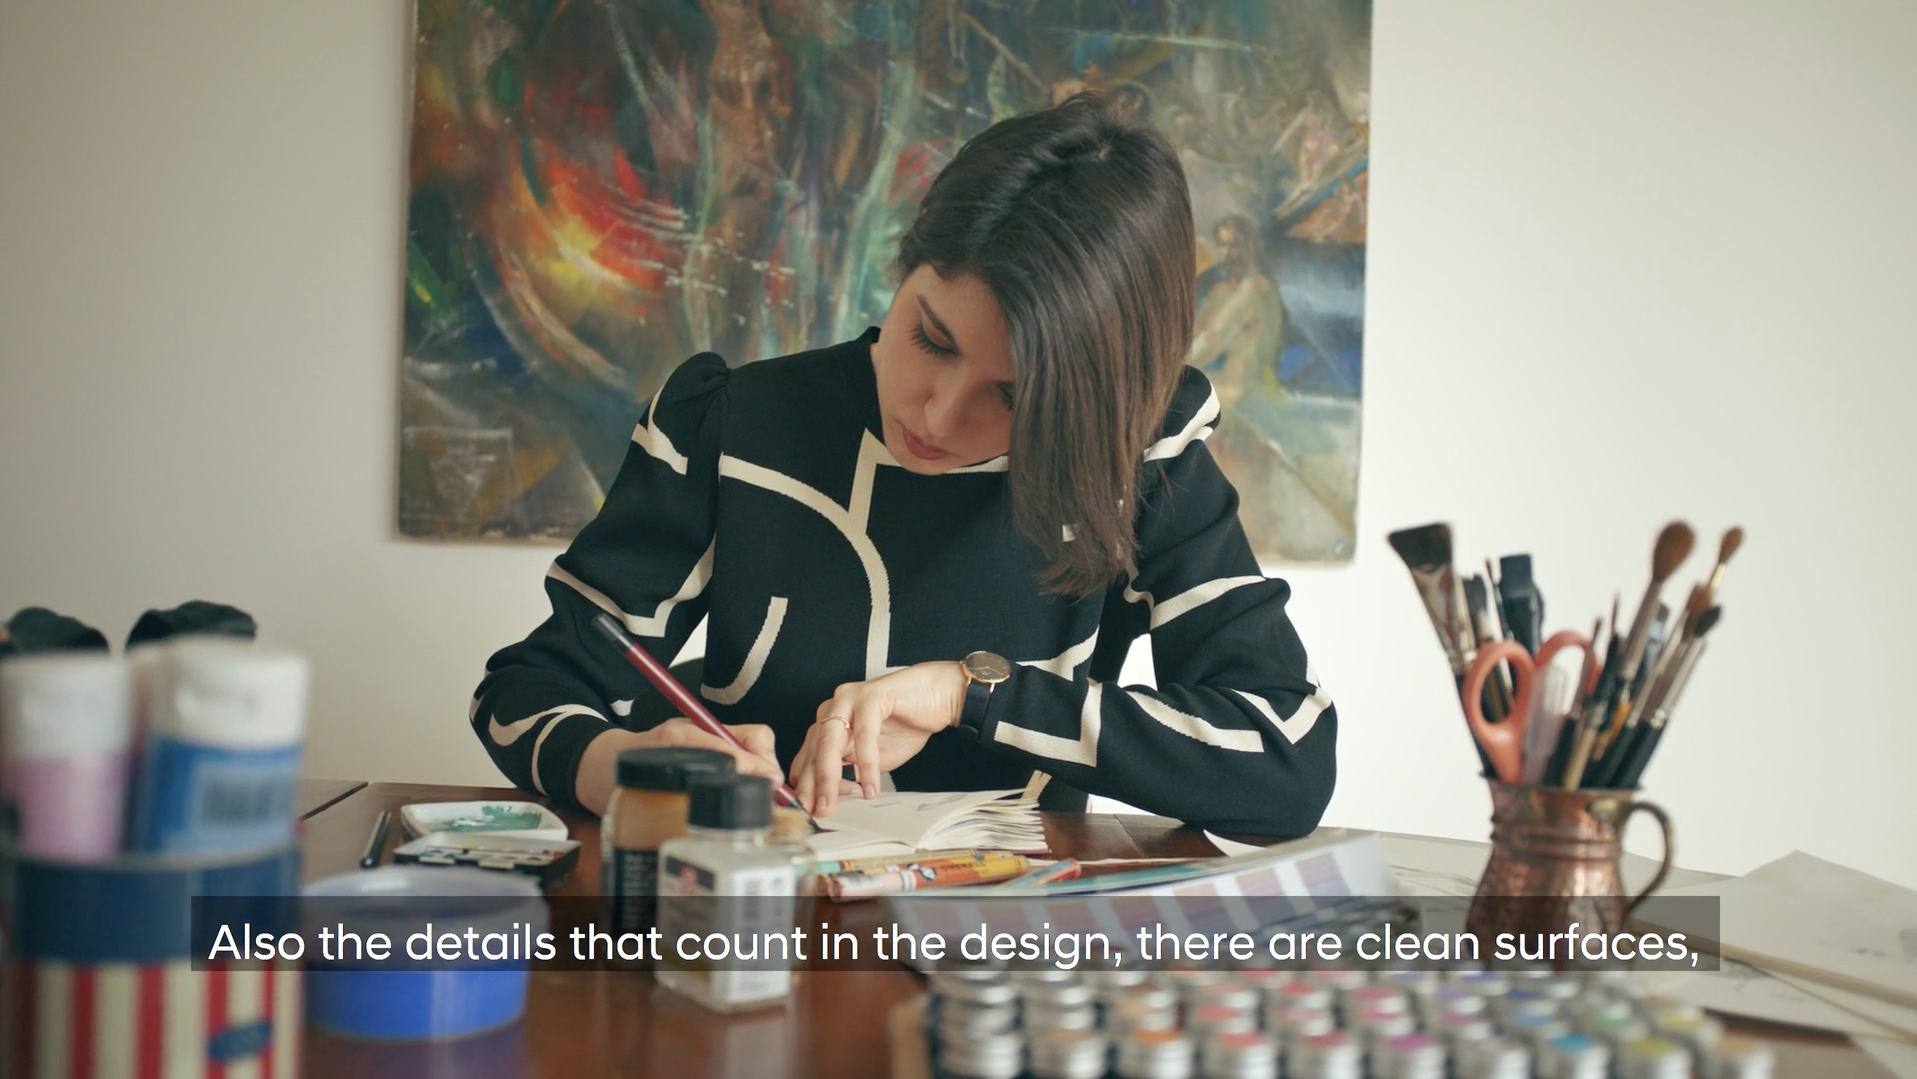 Huyndai Bayon Portrait of artist and illustrator Bahar. Drawing illustrations in her workspace